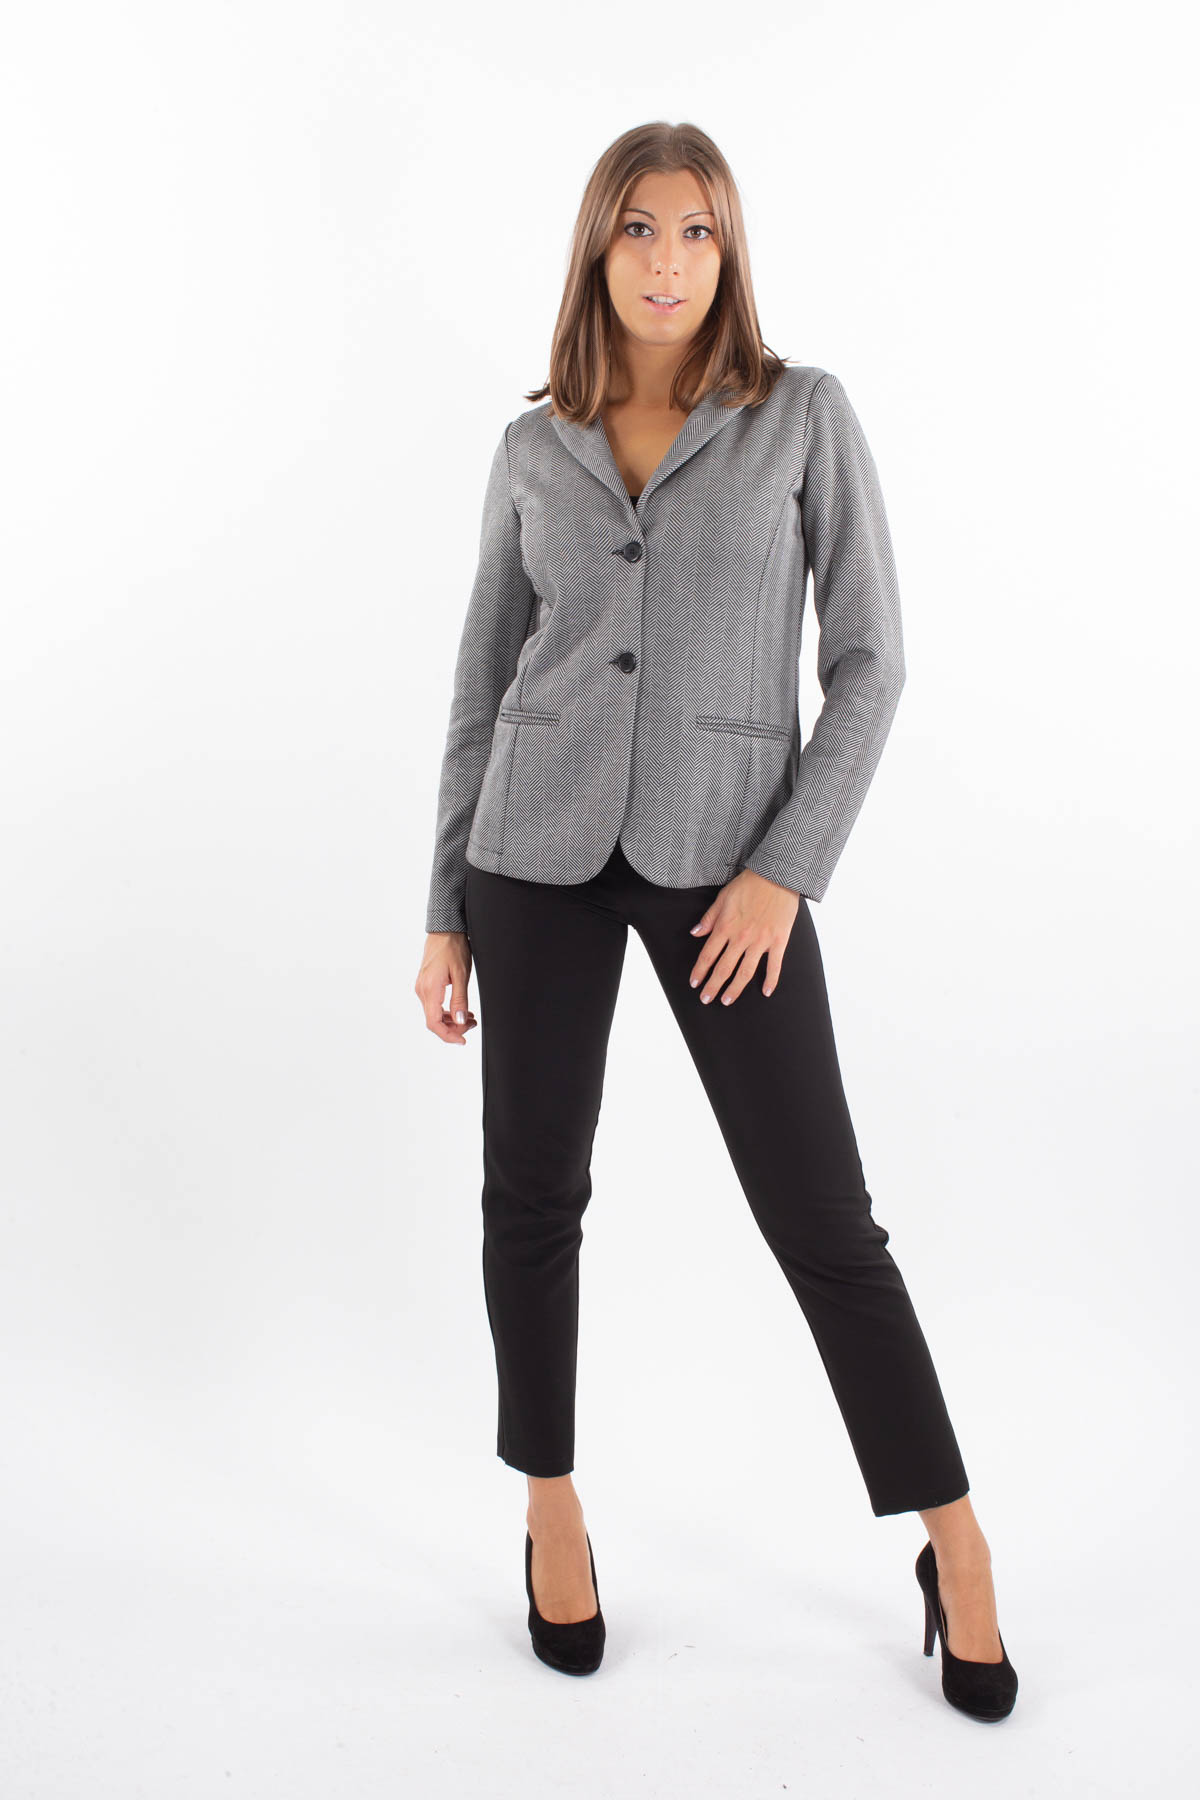 JACKET IN GEOMETRIC VISCOSE PATTERN  for woman - ONLY - Paquito Pronto Moda Shop Online